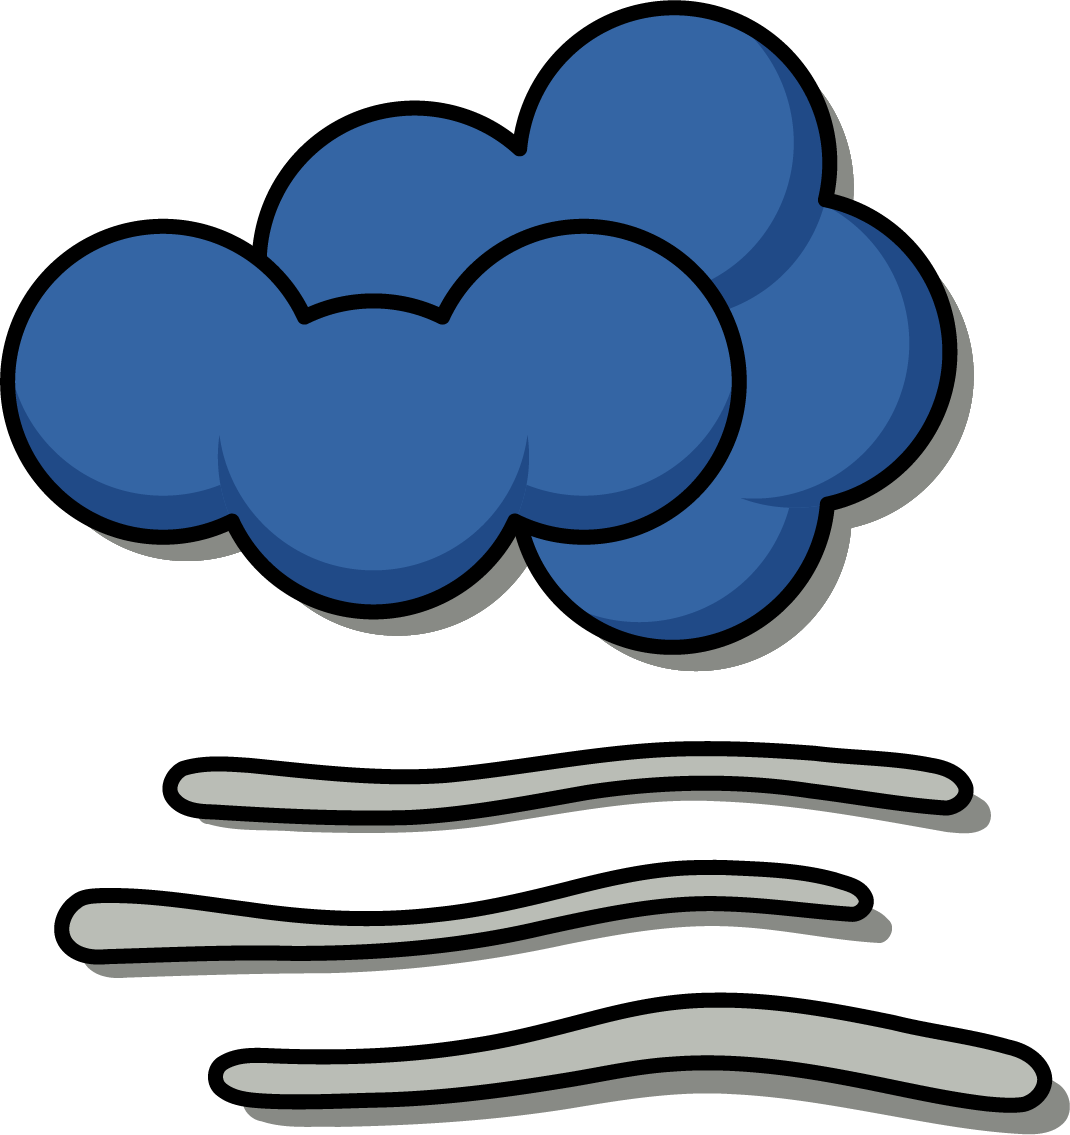 black and white Fog clipart weather pattern. Cloud clip art foggy.